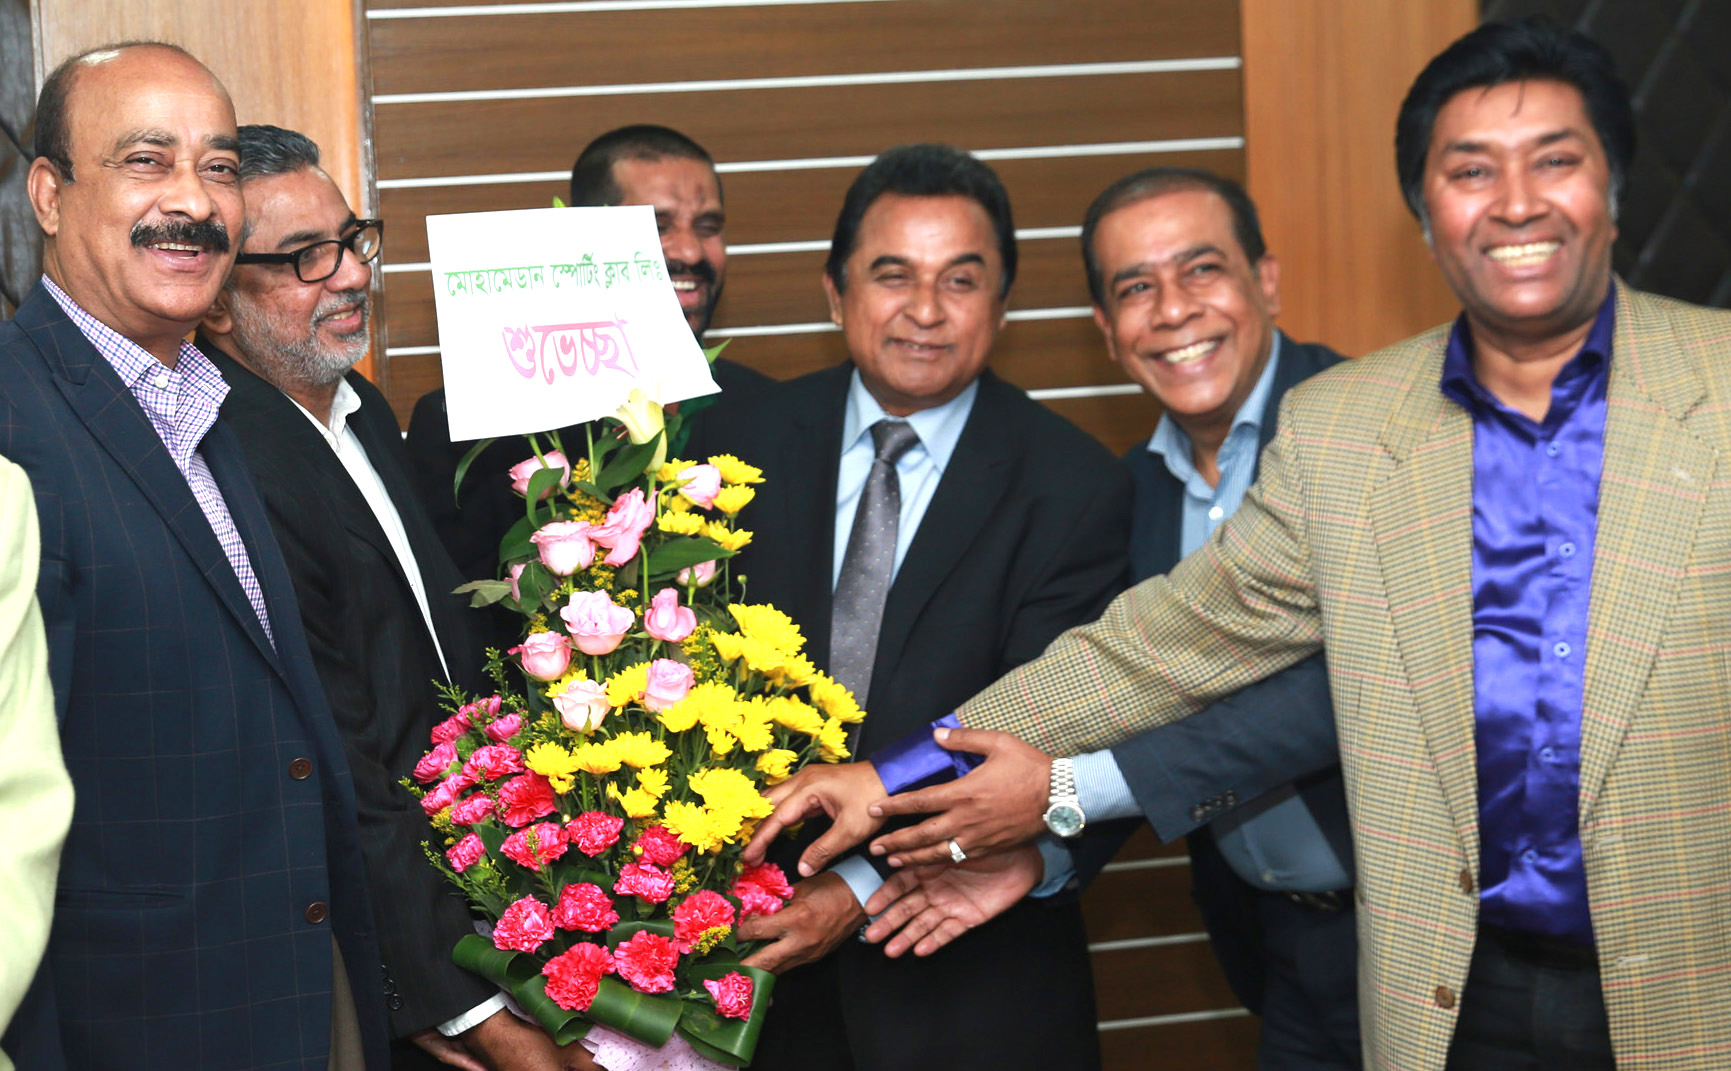 Representatives of Dhaka Mohammedan Sporting Club Ltd welcomed the Finance      Minister A H M Mustafa Kamal with flowers at his own office of Economic Relations            Division at Sher-e-Banglanagar in the capital on Sunday. Director in-charge of the club    Lokman Hossain Bhuiya, Director Mahbub Anam, Director Rejaur Rahman Shohag, among others, were present on the occasion.